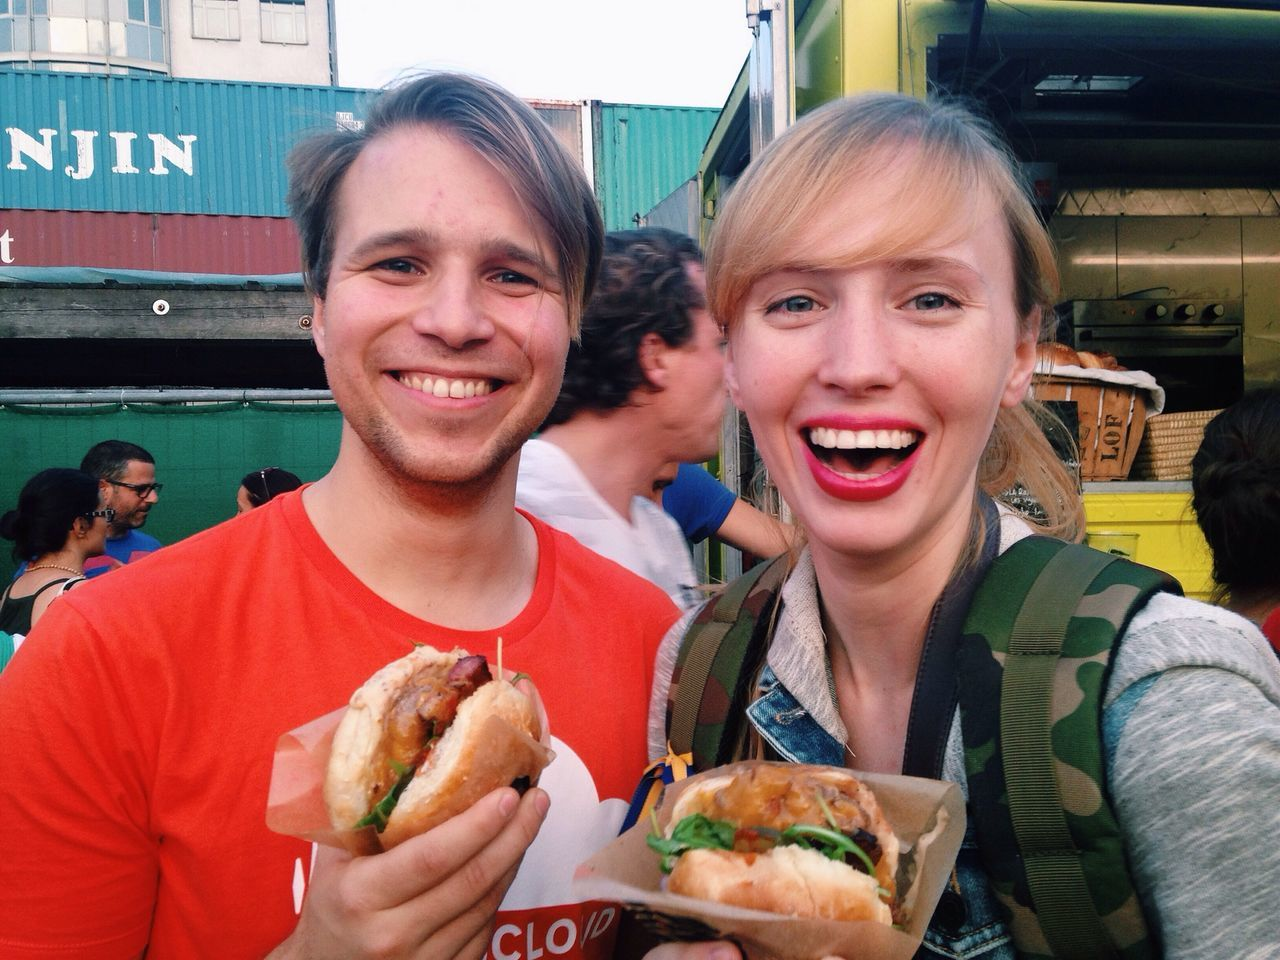 Burgers and Friends and Smiles . Keep Smiling Even When Everyone Wants To Bring You Down!